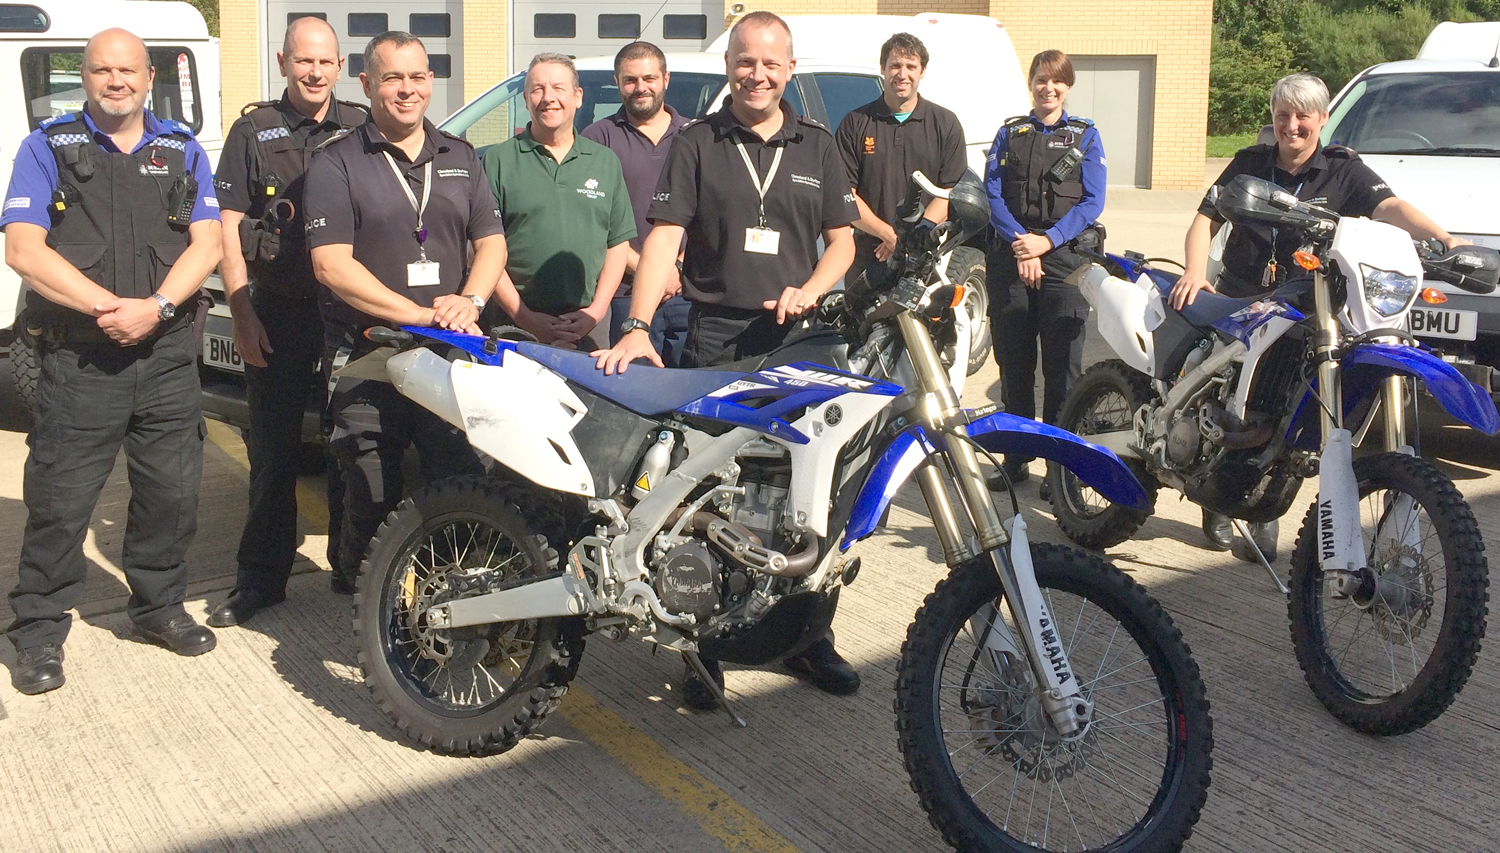 Nuisance Off-Road Bikers Targeted by Police